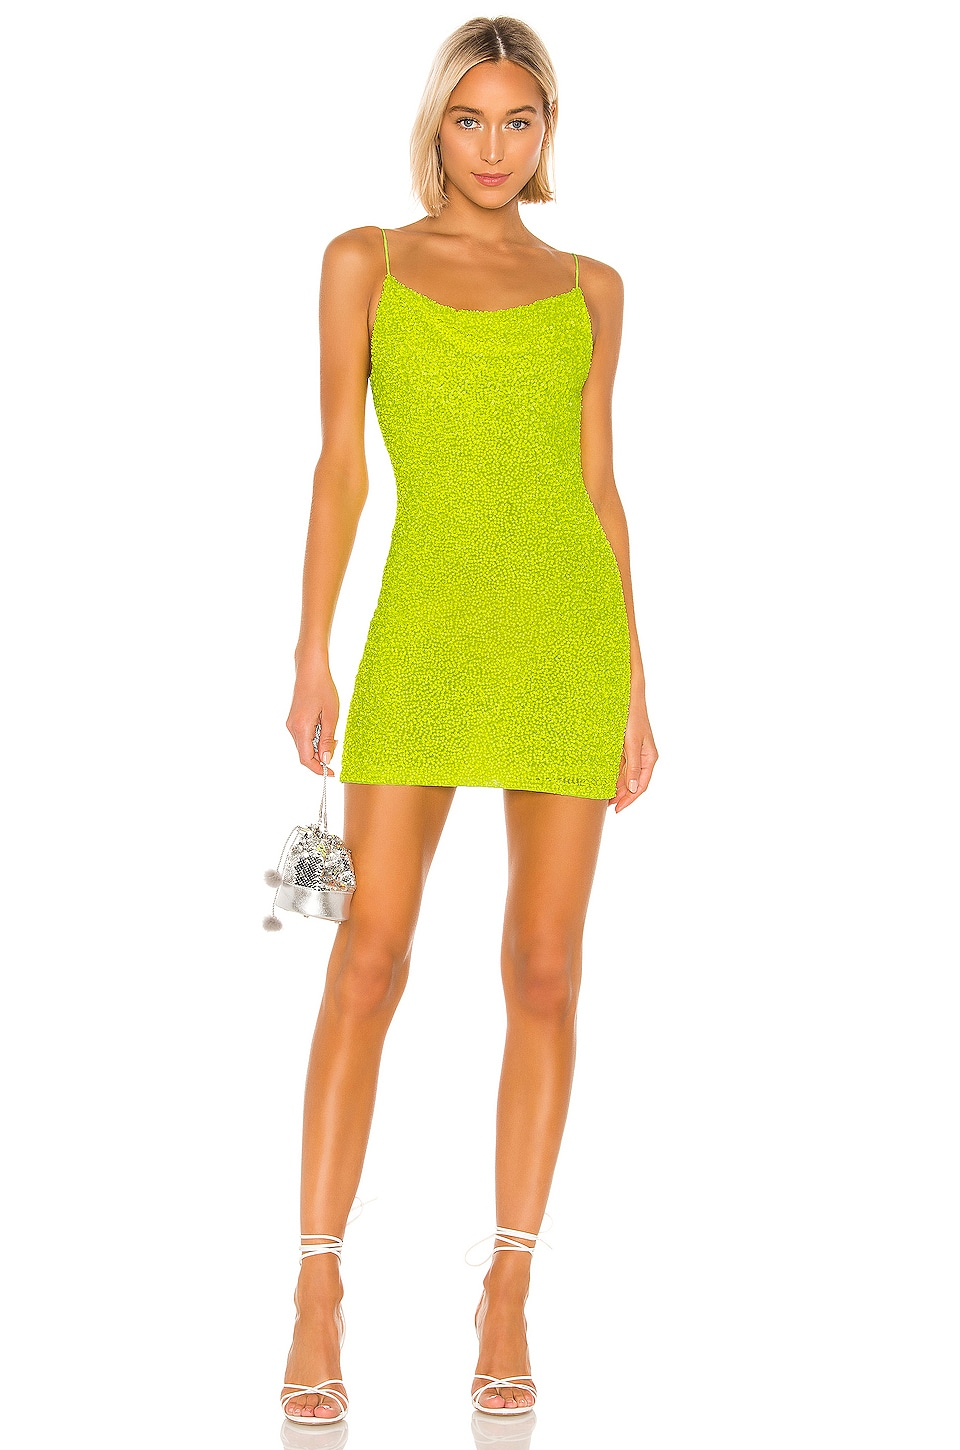 Alice + Olivia Harmie Sequin Mini Dress in Neon Yellow